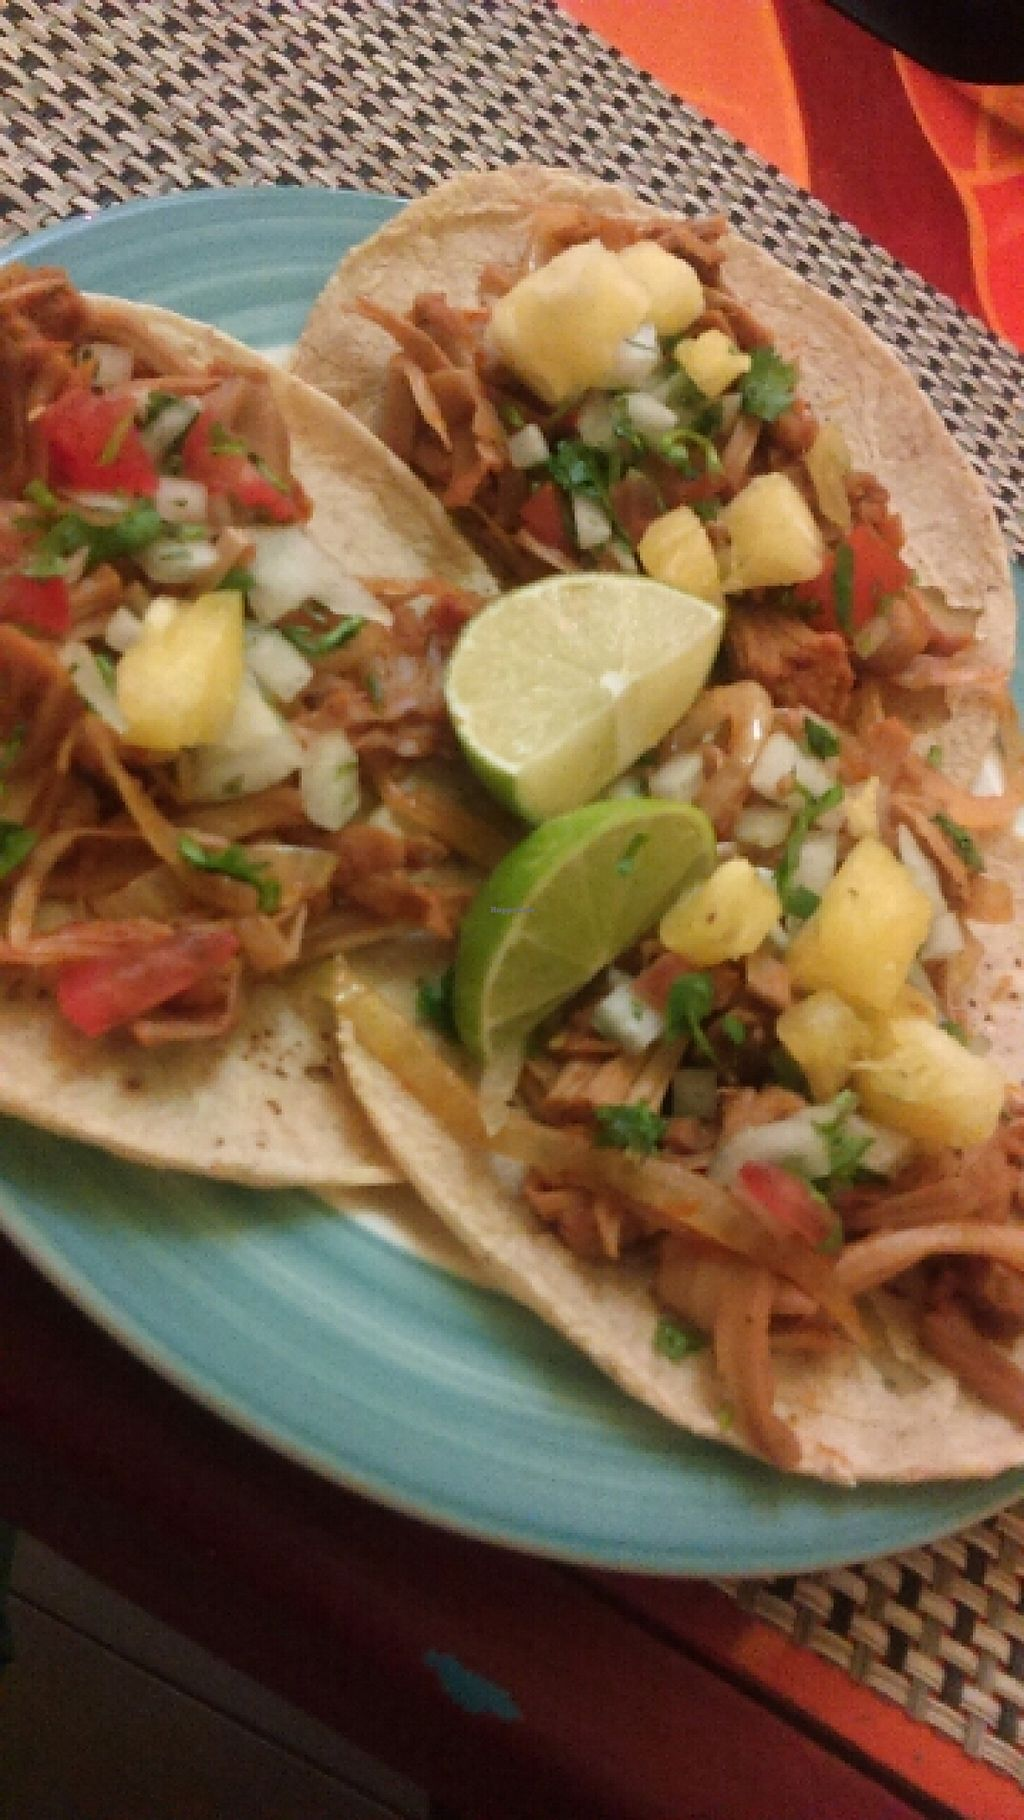 """Photo of Dharma Vegetariano  by <a href=""""/members/profile/Dharma%20Cafe"""">Dharma Cafe</a> <br/>tacos al Pastor de jackfruit <br/> July 7, 2016  - <a href='/contact/abuse/image/63308/158288'>Report</a>"""